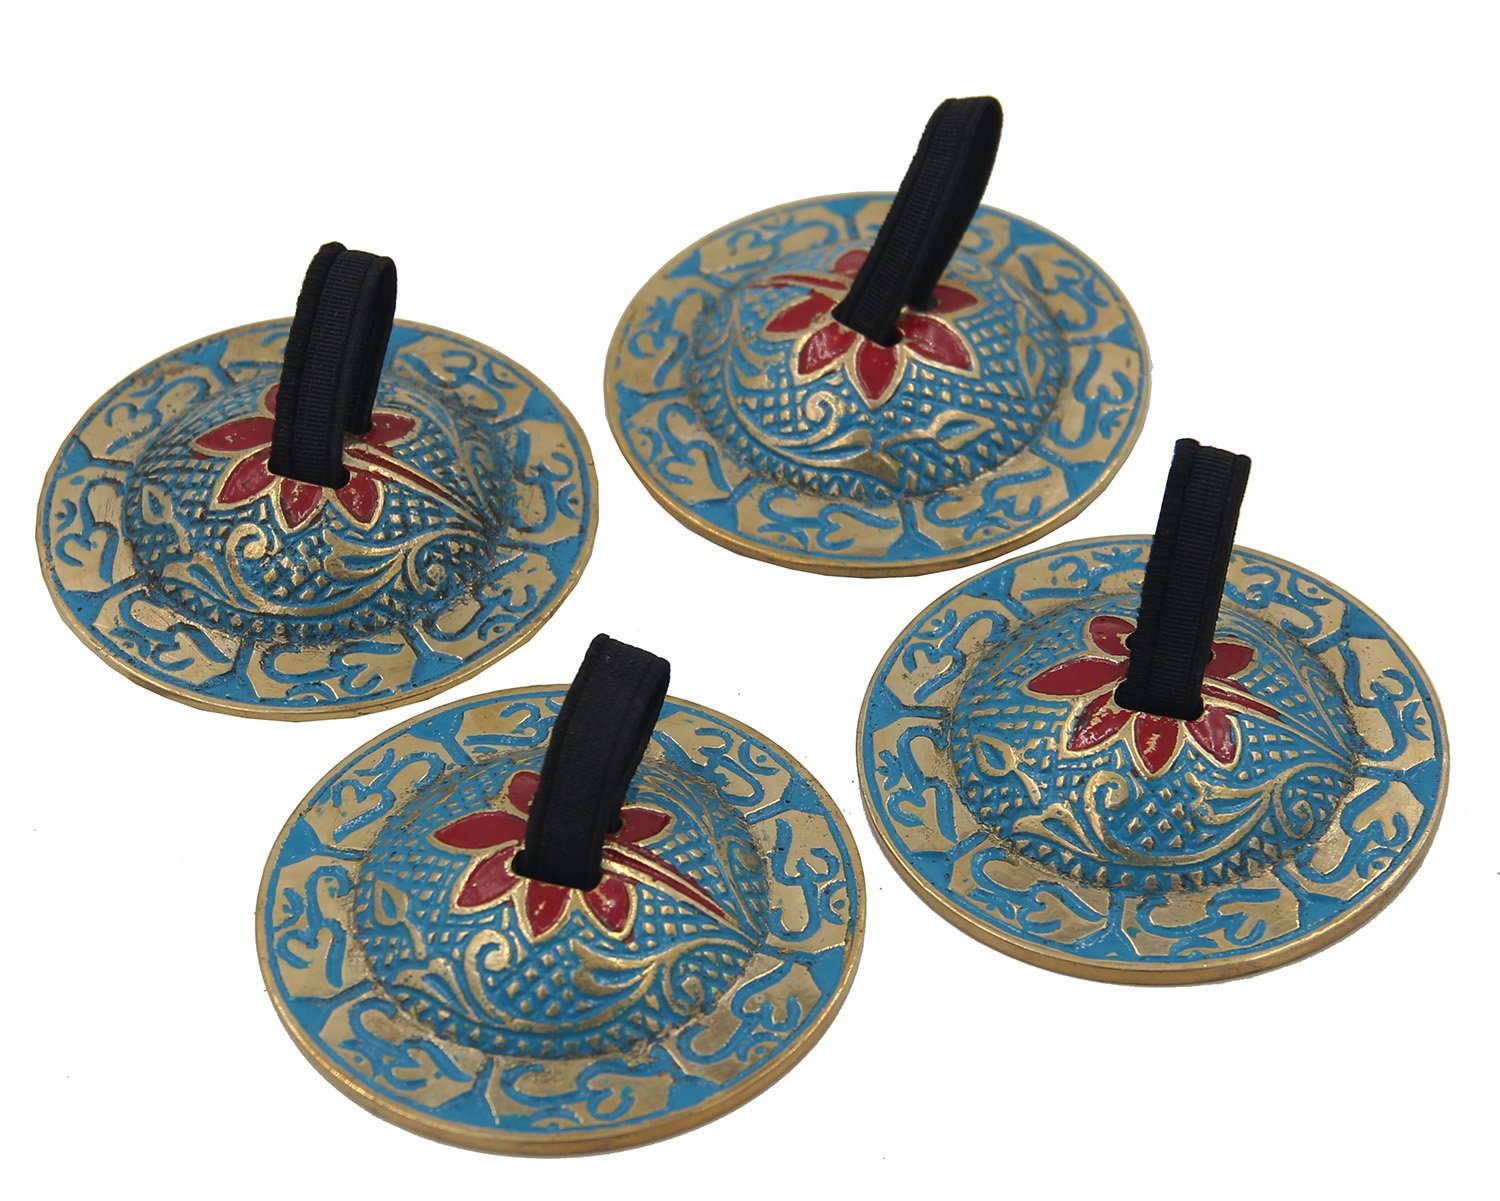 DharmaObjects 2 Pairs OM Pro Brass Fingers Cymbal Zills Belly Dancing Free Silk Pouch (Turquoise) by Lungta Imports